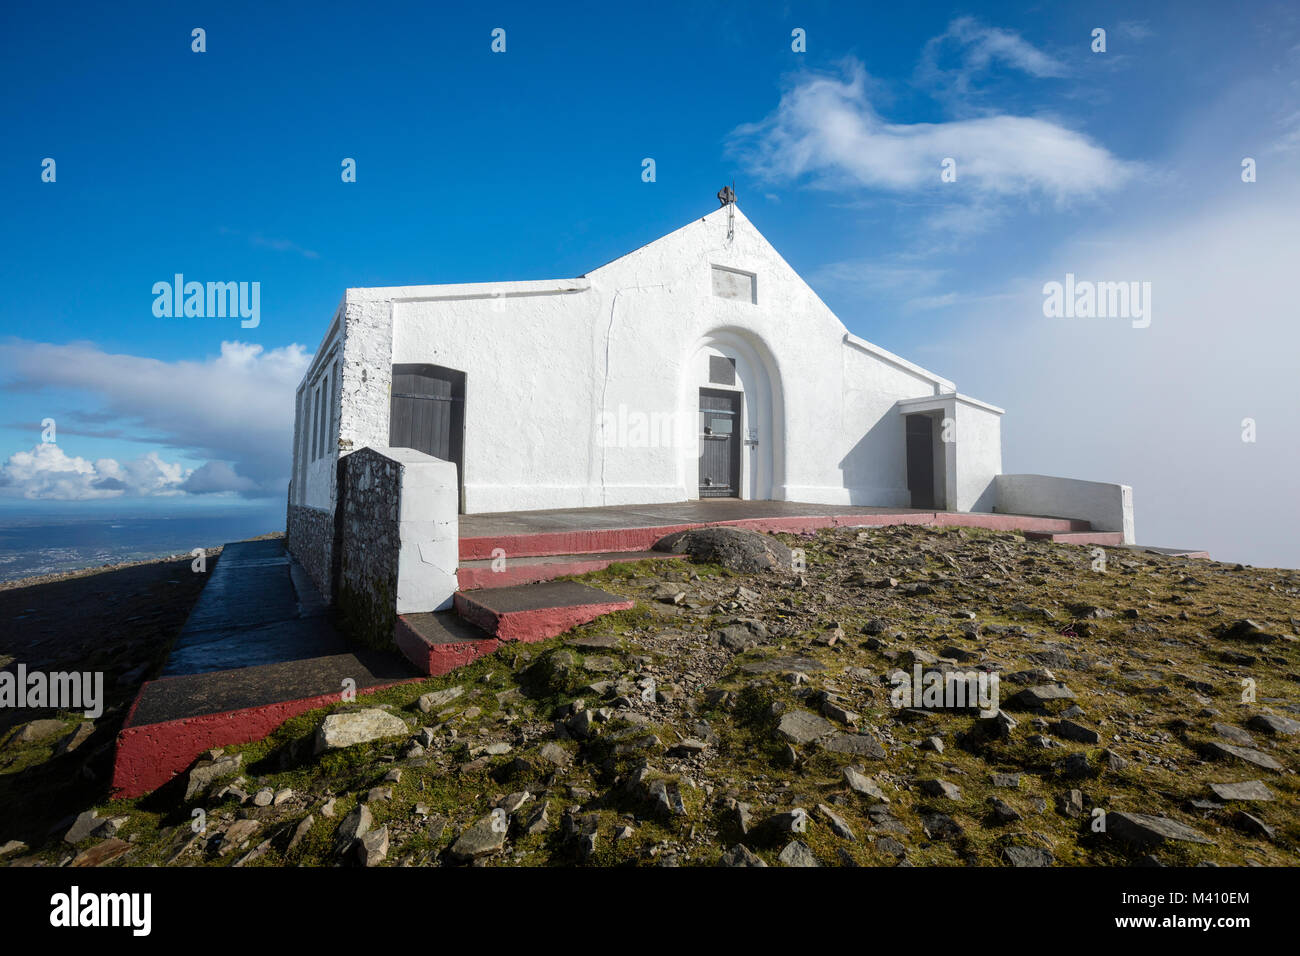 Ireland's highest church at the summit of Croagh Patrick, County Mayo, Ireland. - Stock Image